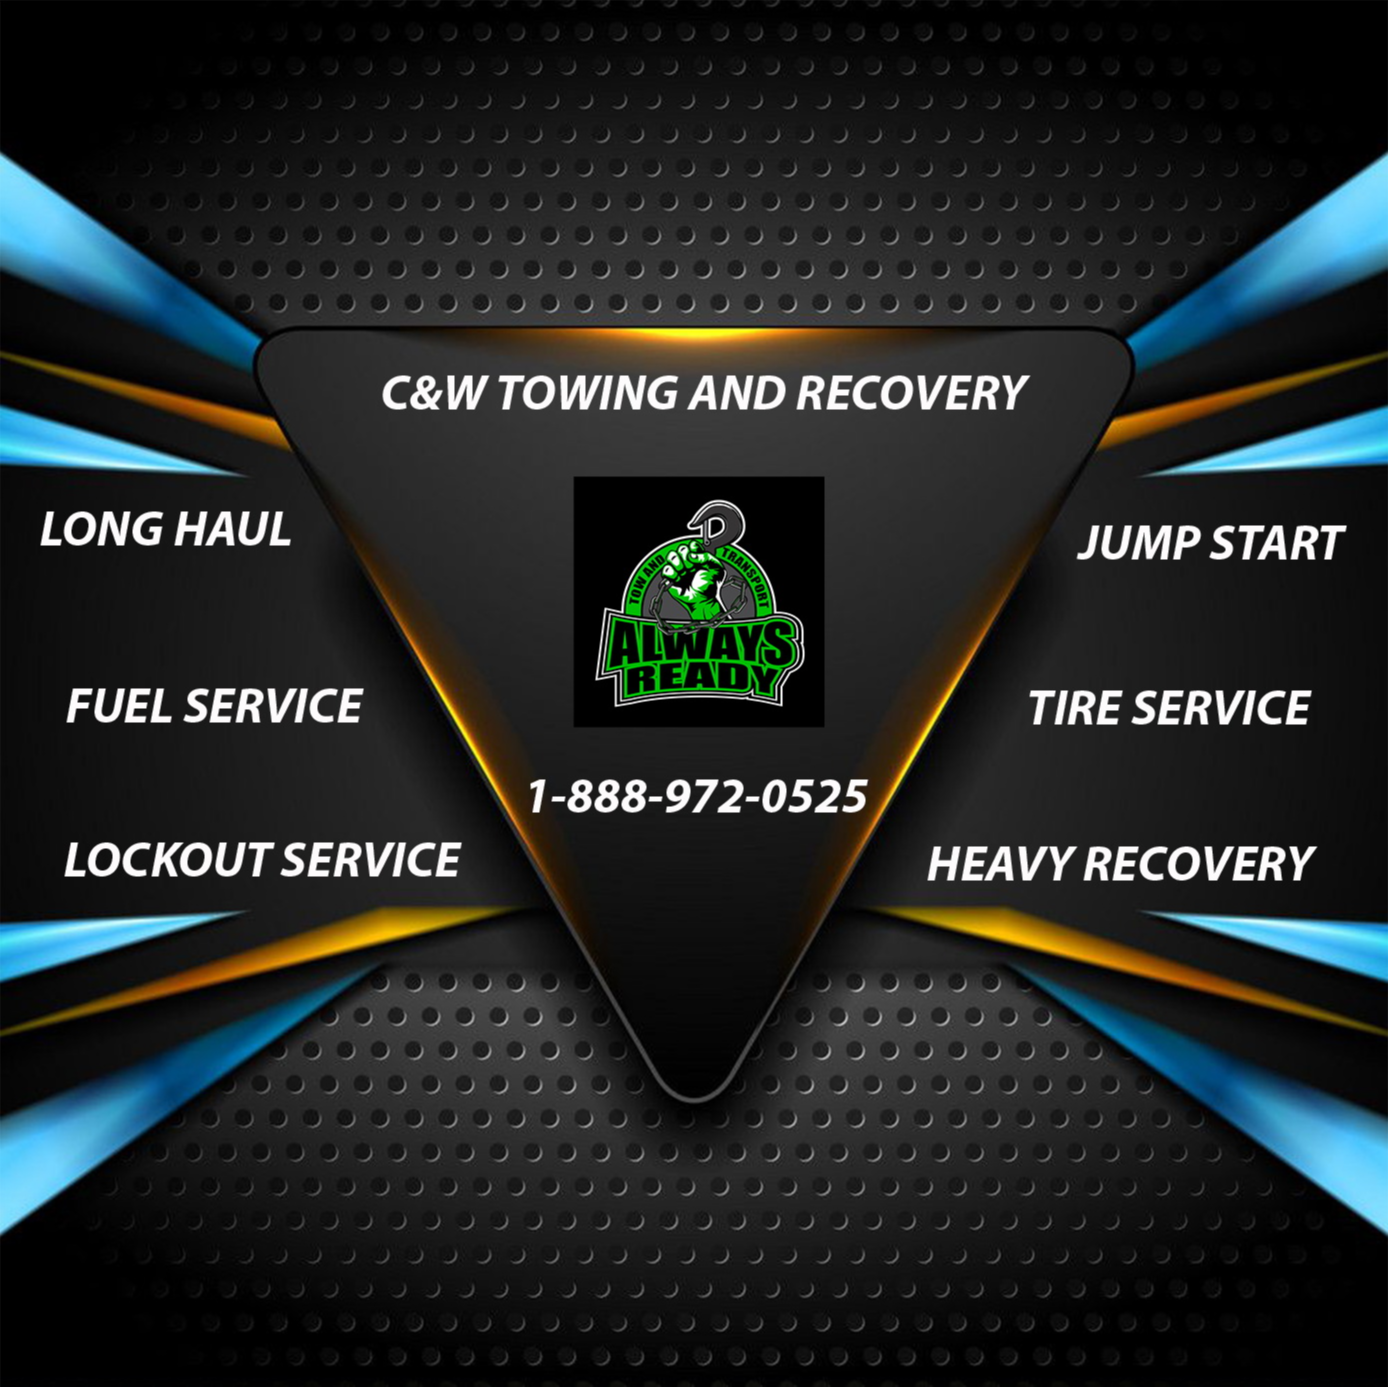 C & W Towing and Recovery logo